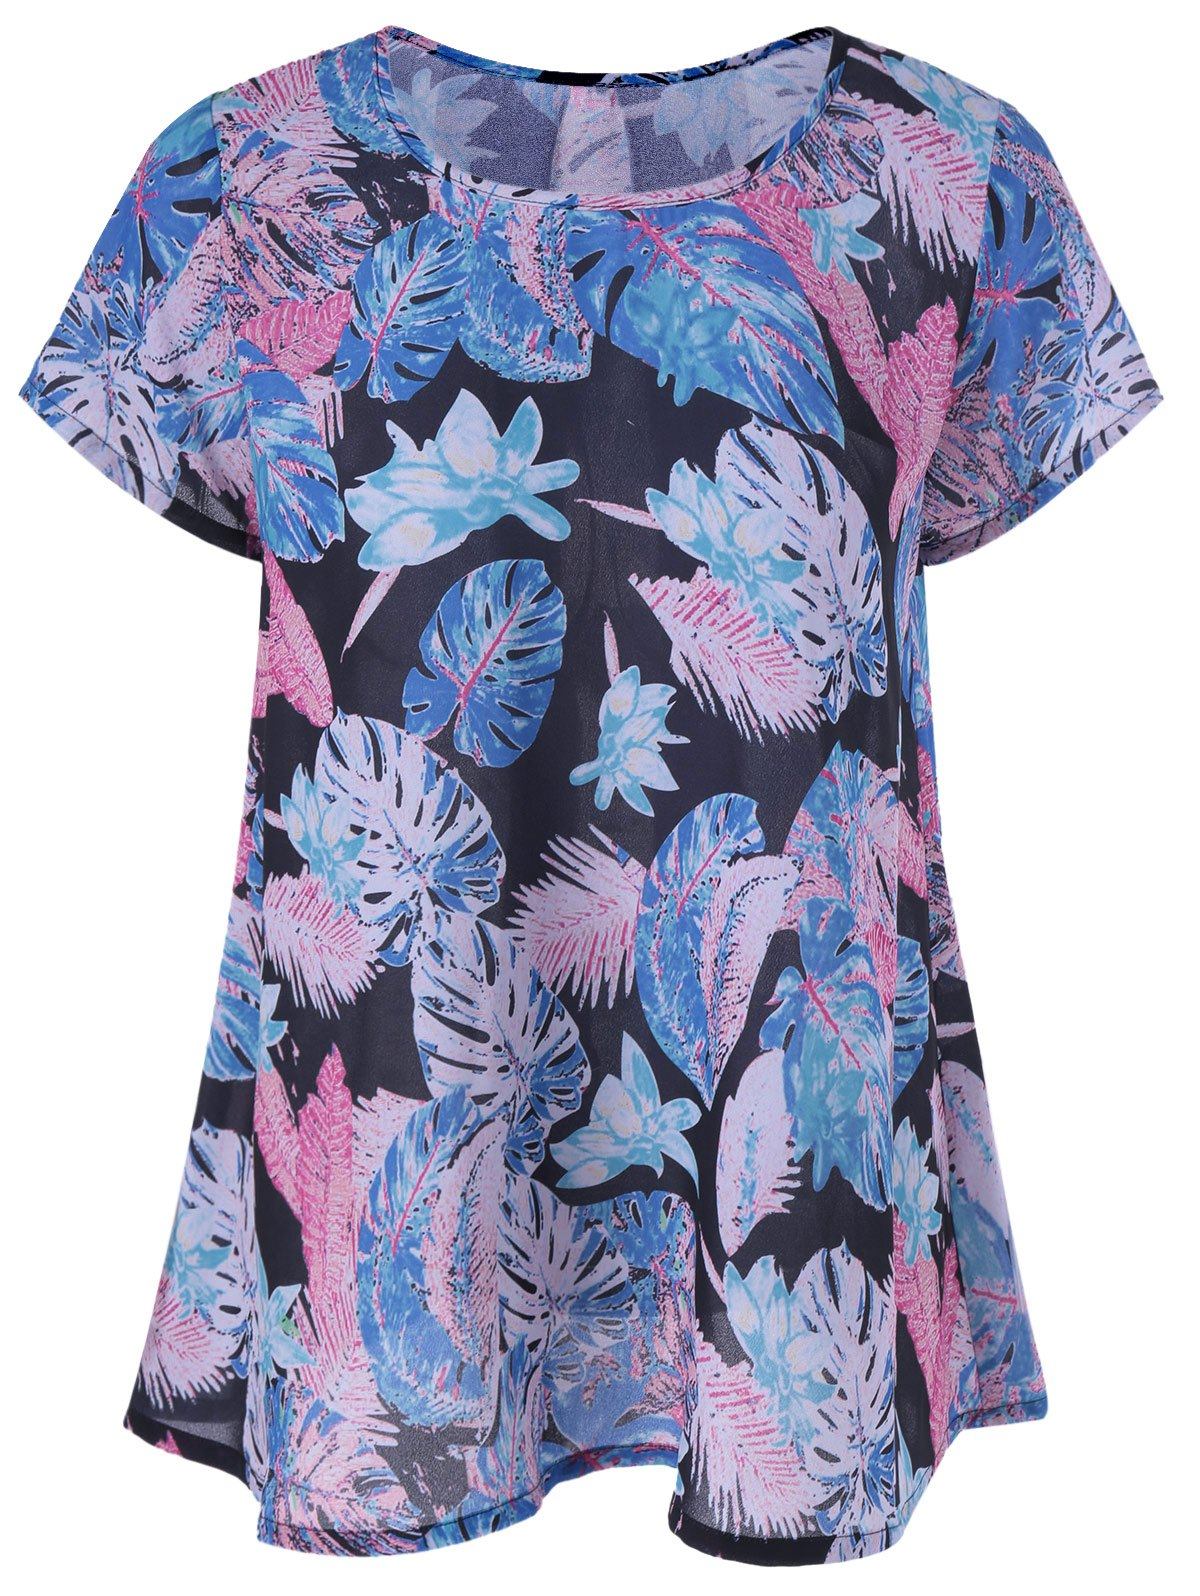 Casual Draped Leaf Print Blouse - BLUE XL